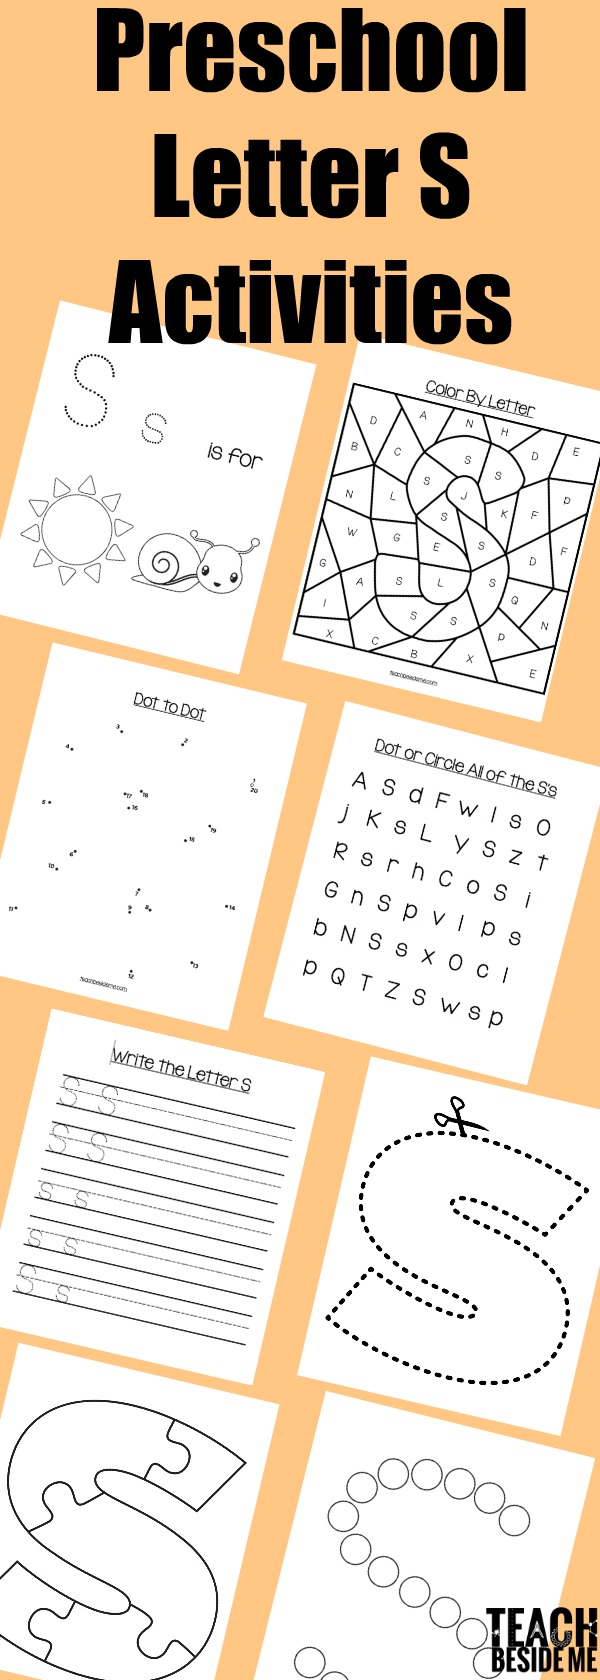 Preschool Letter S Activities worksheets